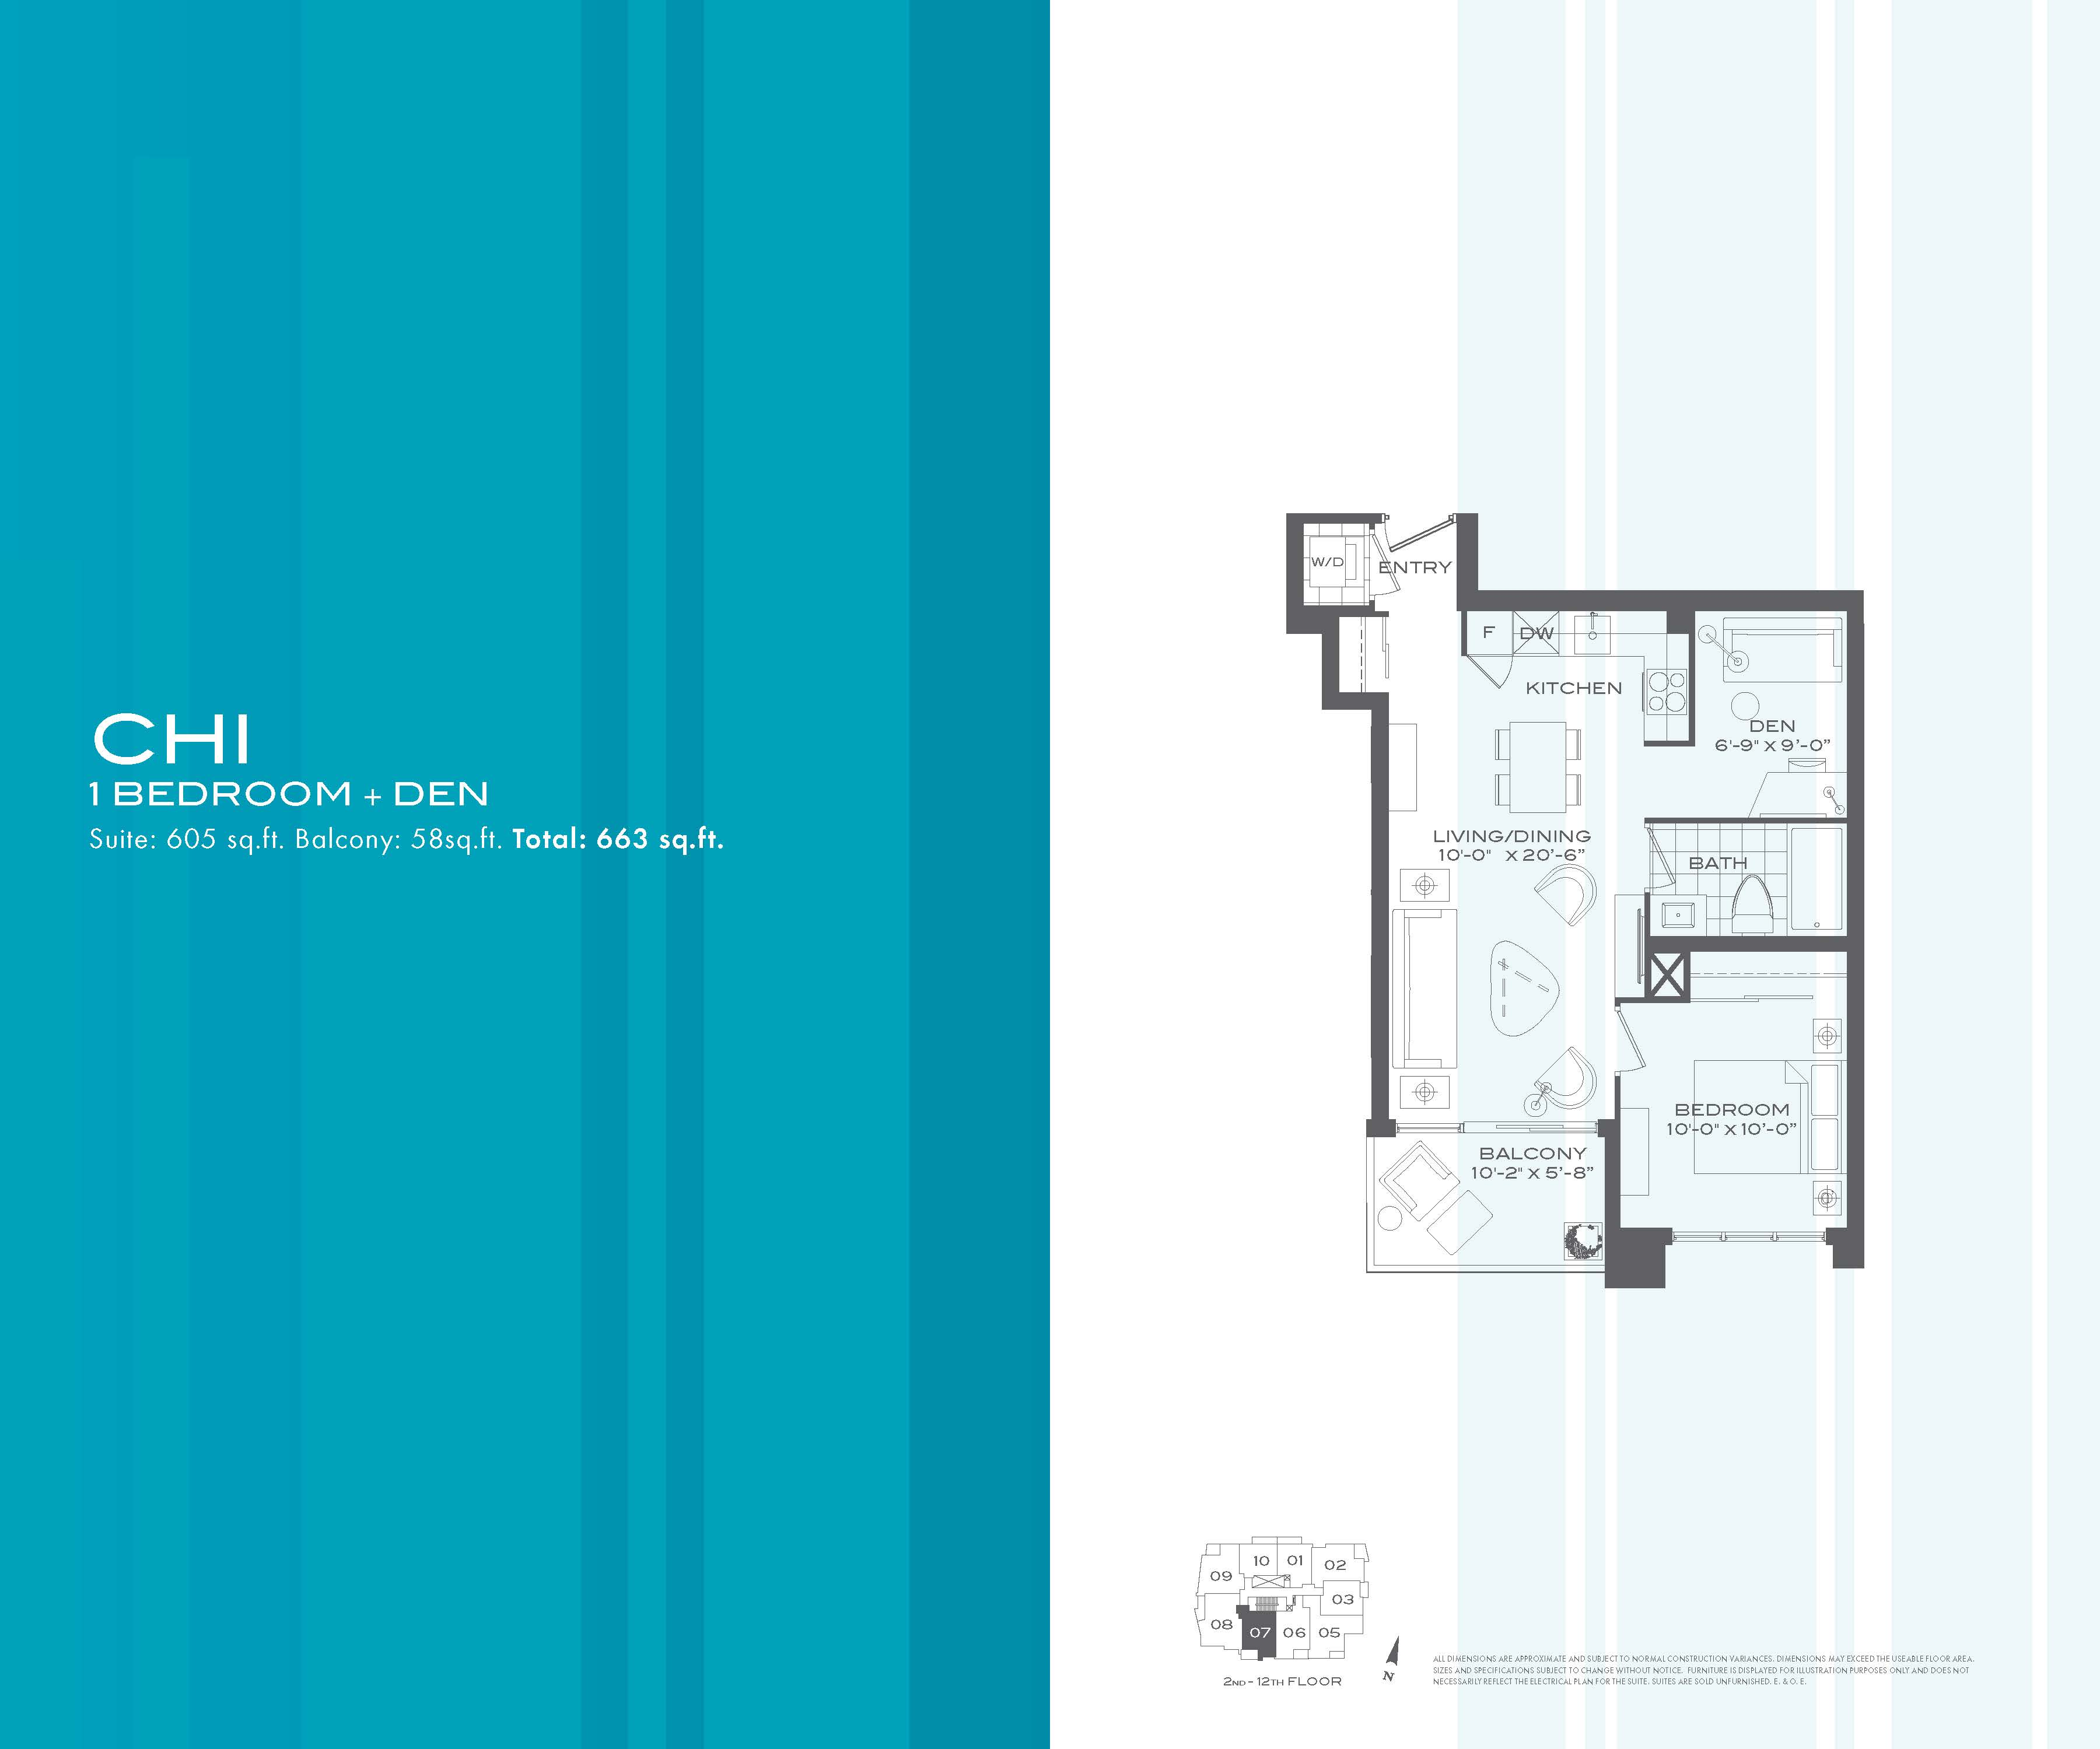 Flo condos 1 bedroom den chi floor plan for 1 bedroom condo floor plans